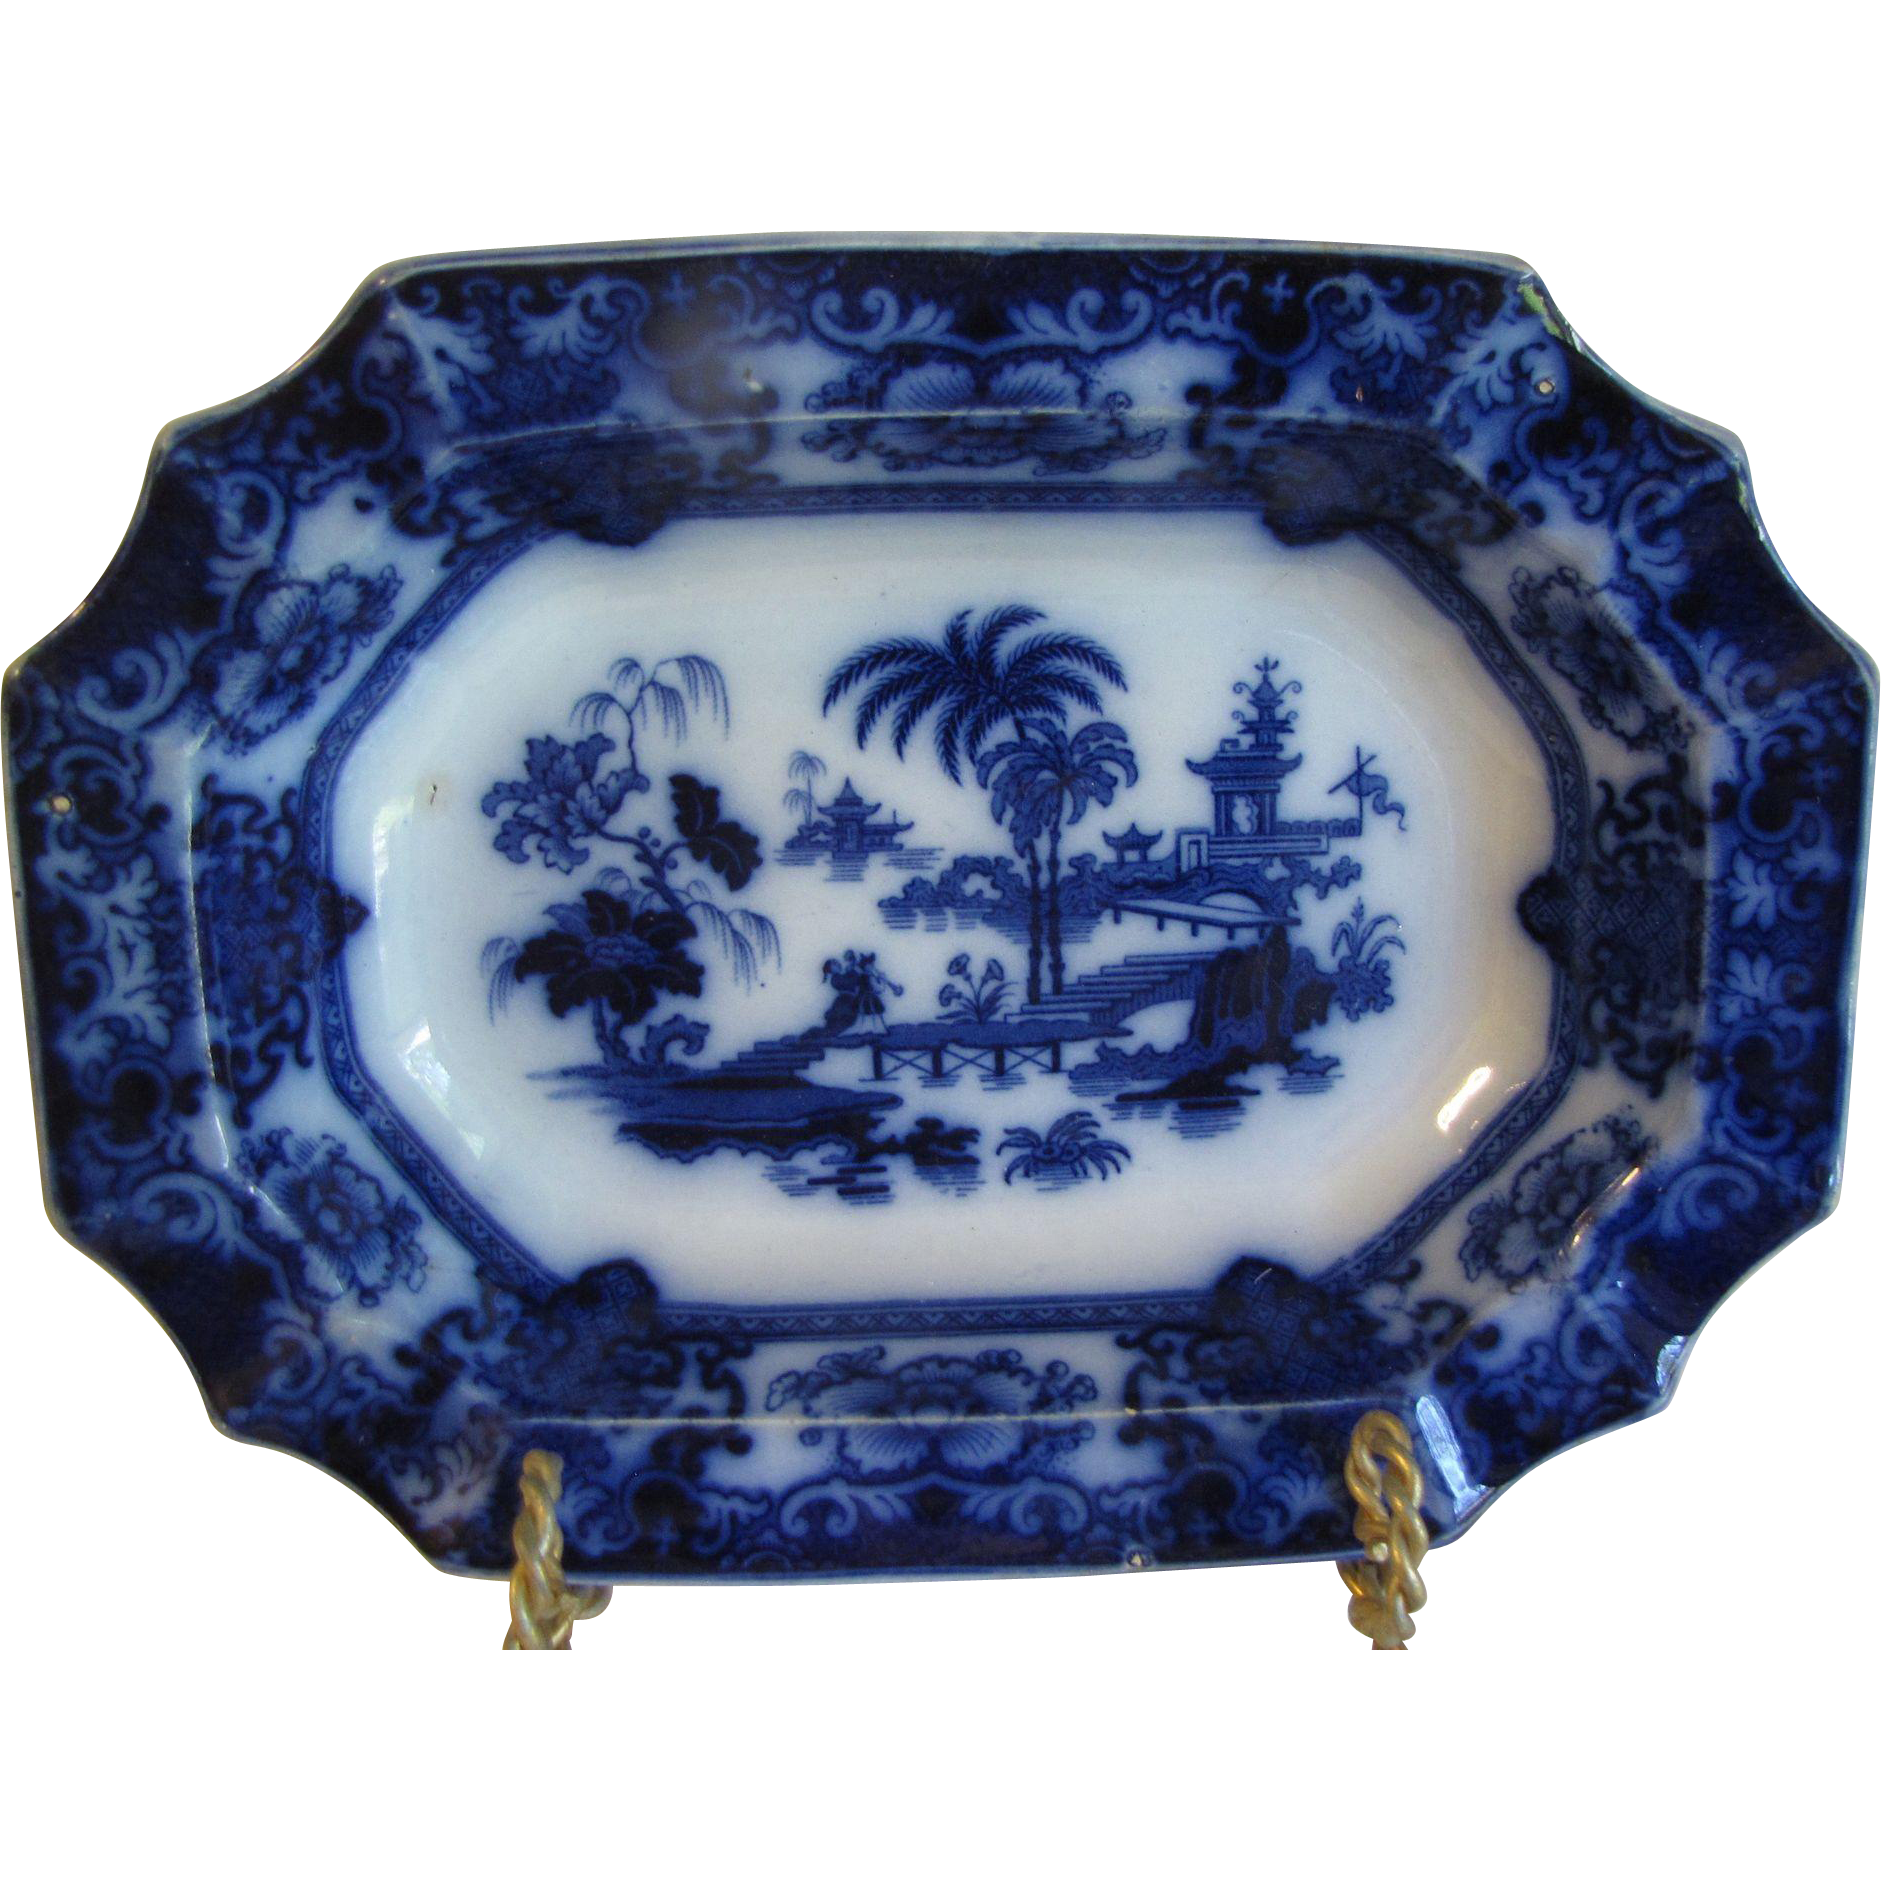 Flow Blue Vegetable Bowl, SHAPOO, Thomas Hughes & Sons, England CA 1910-1930